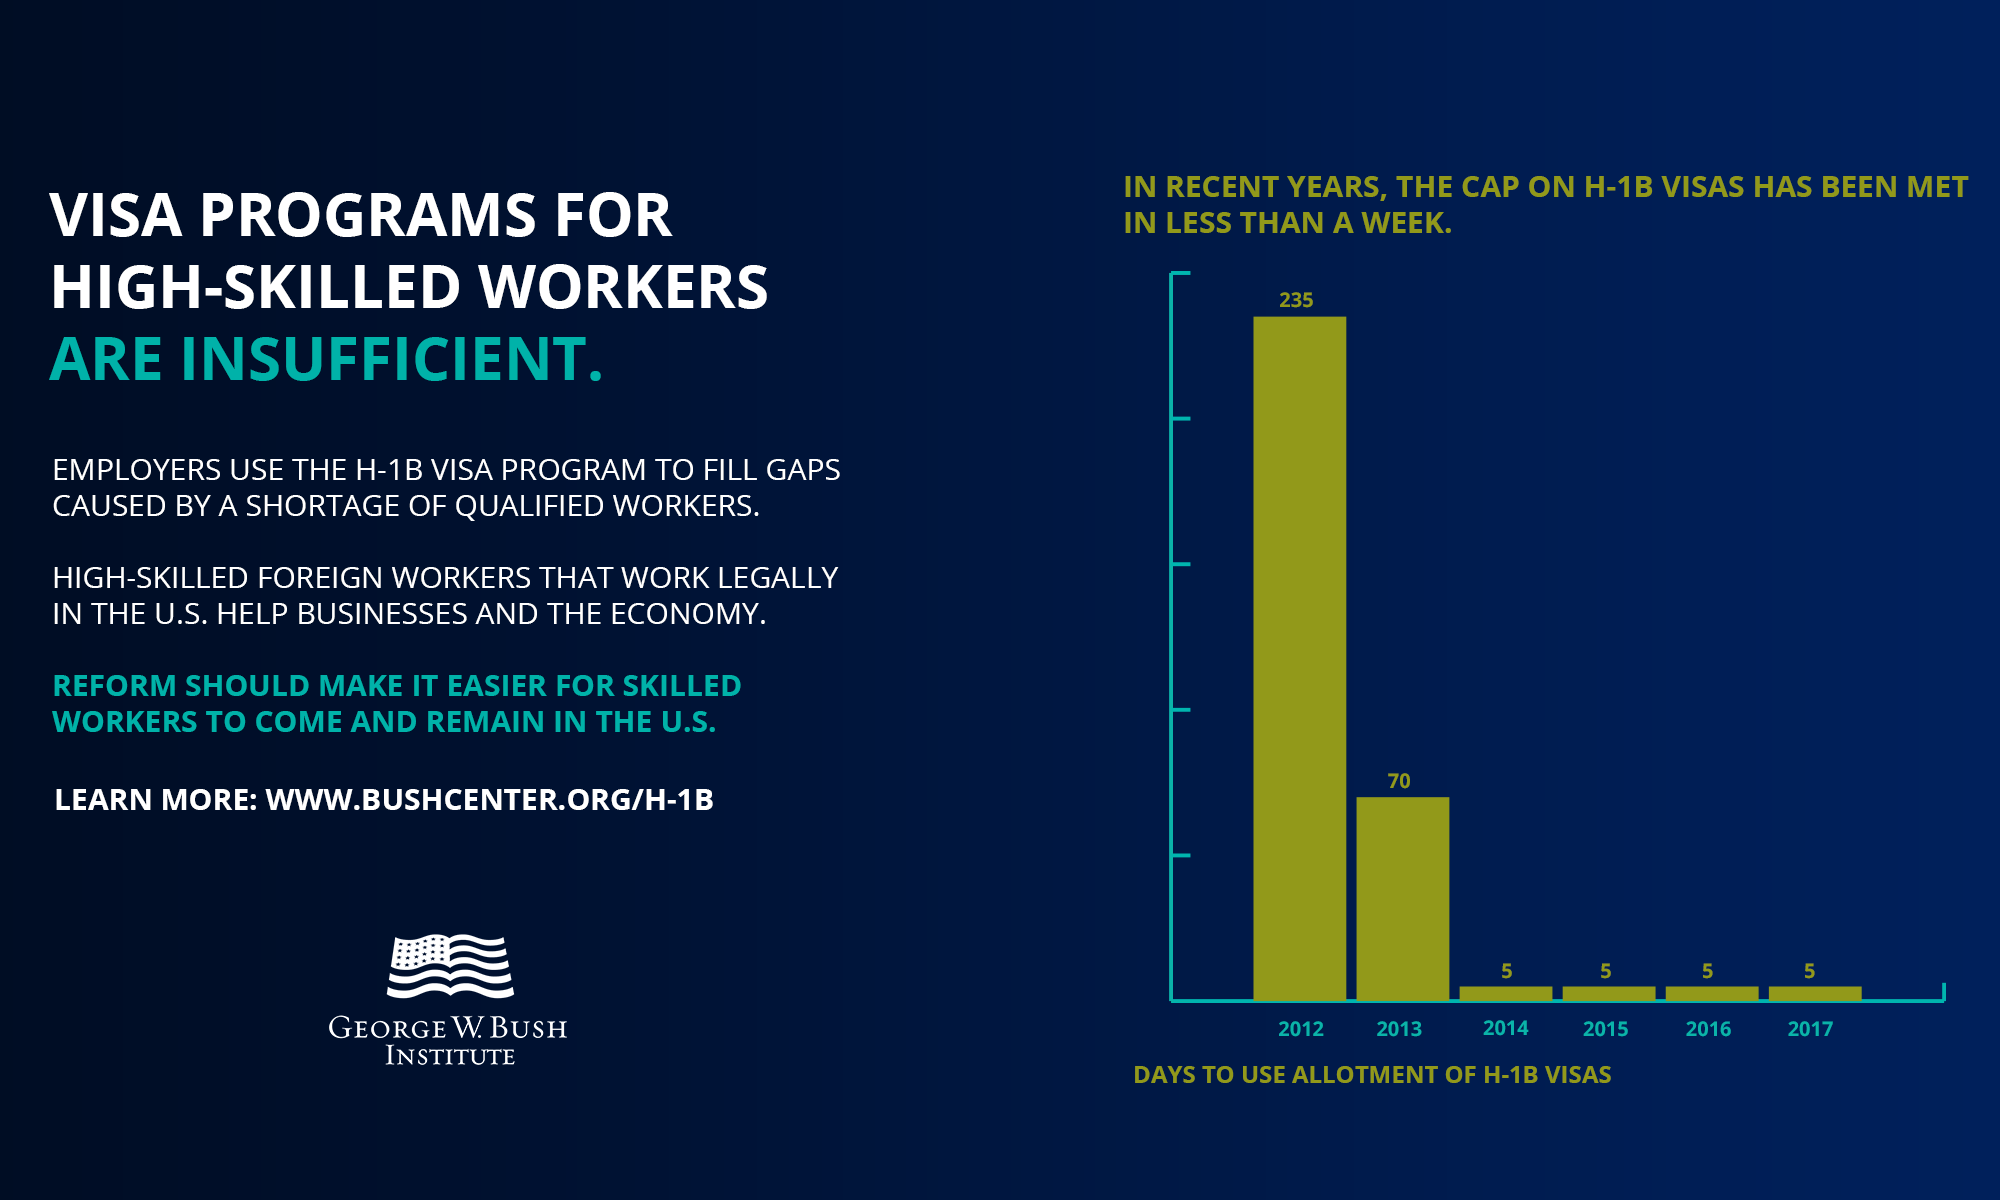 Visa programs for high-skilled workers are insufficient